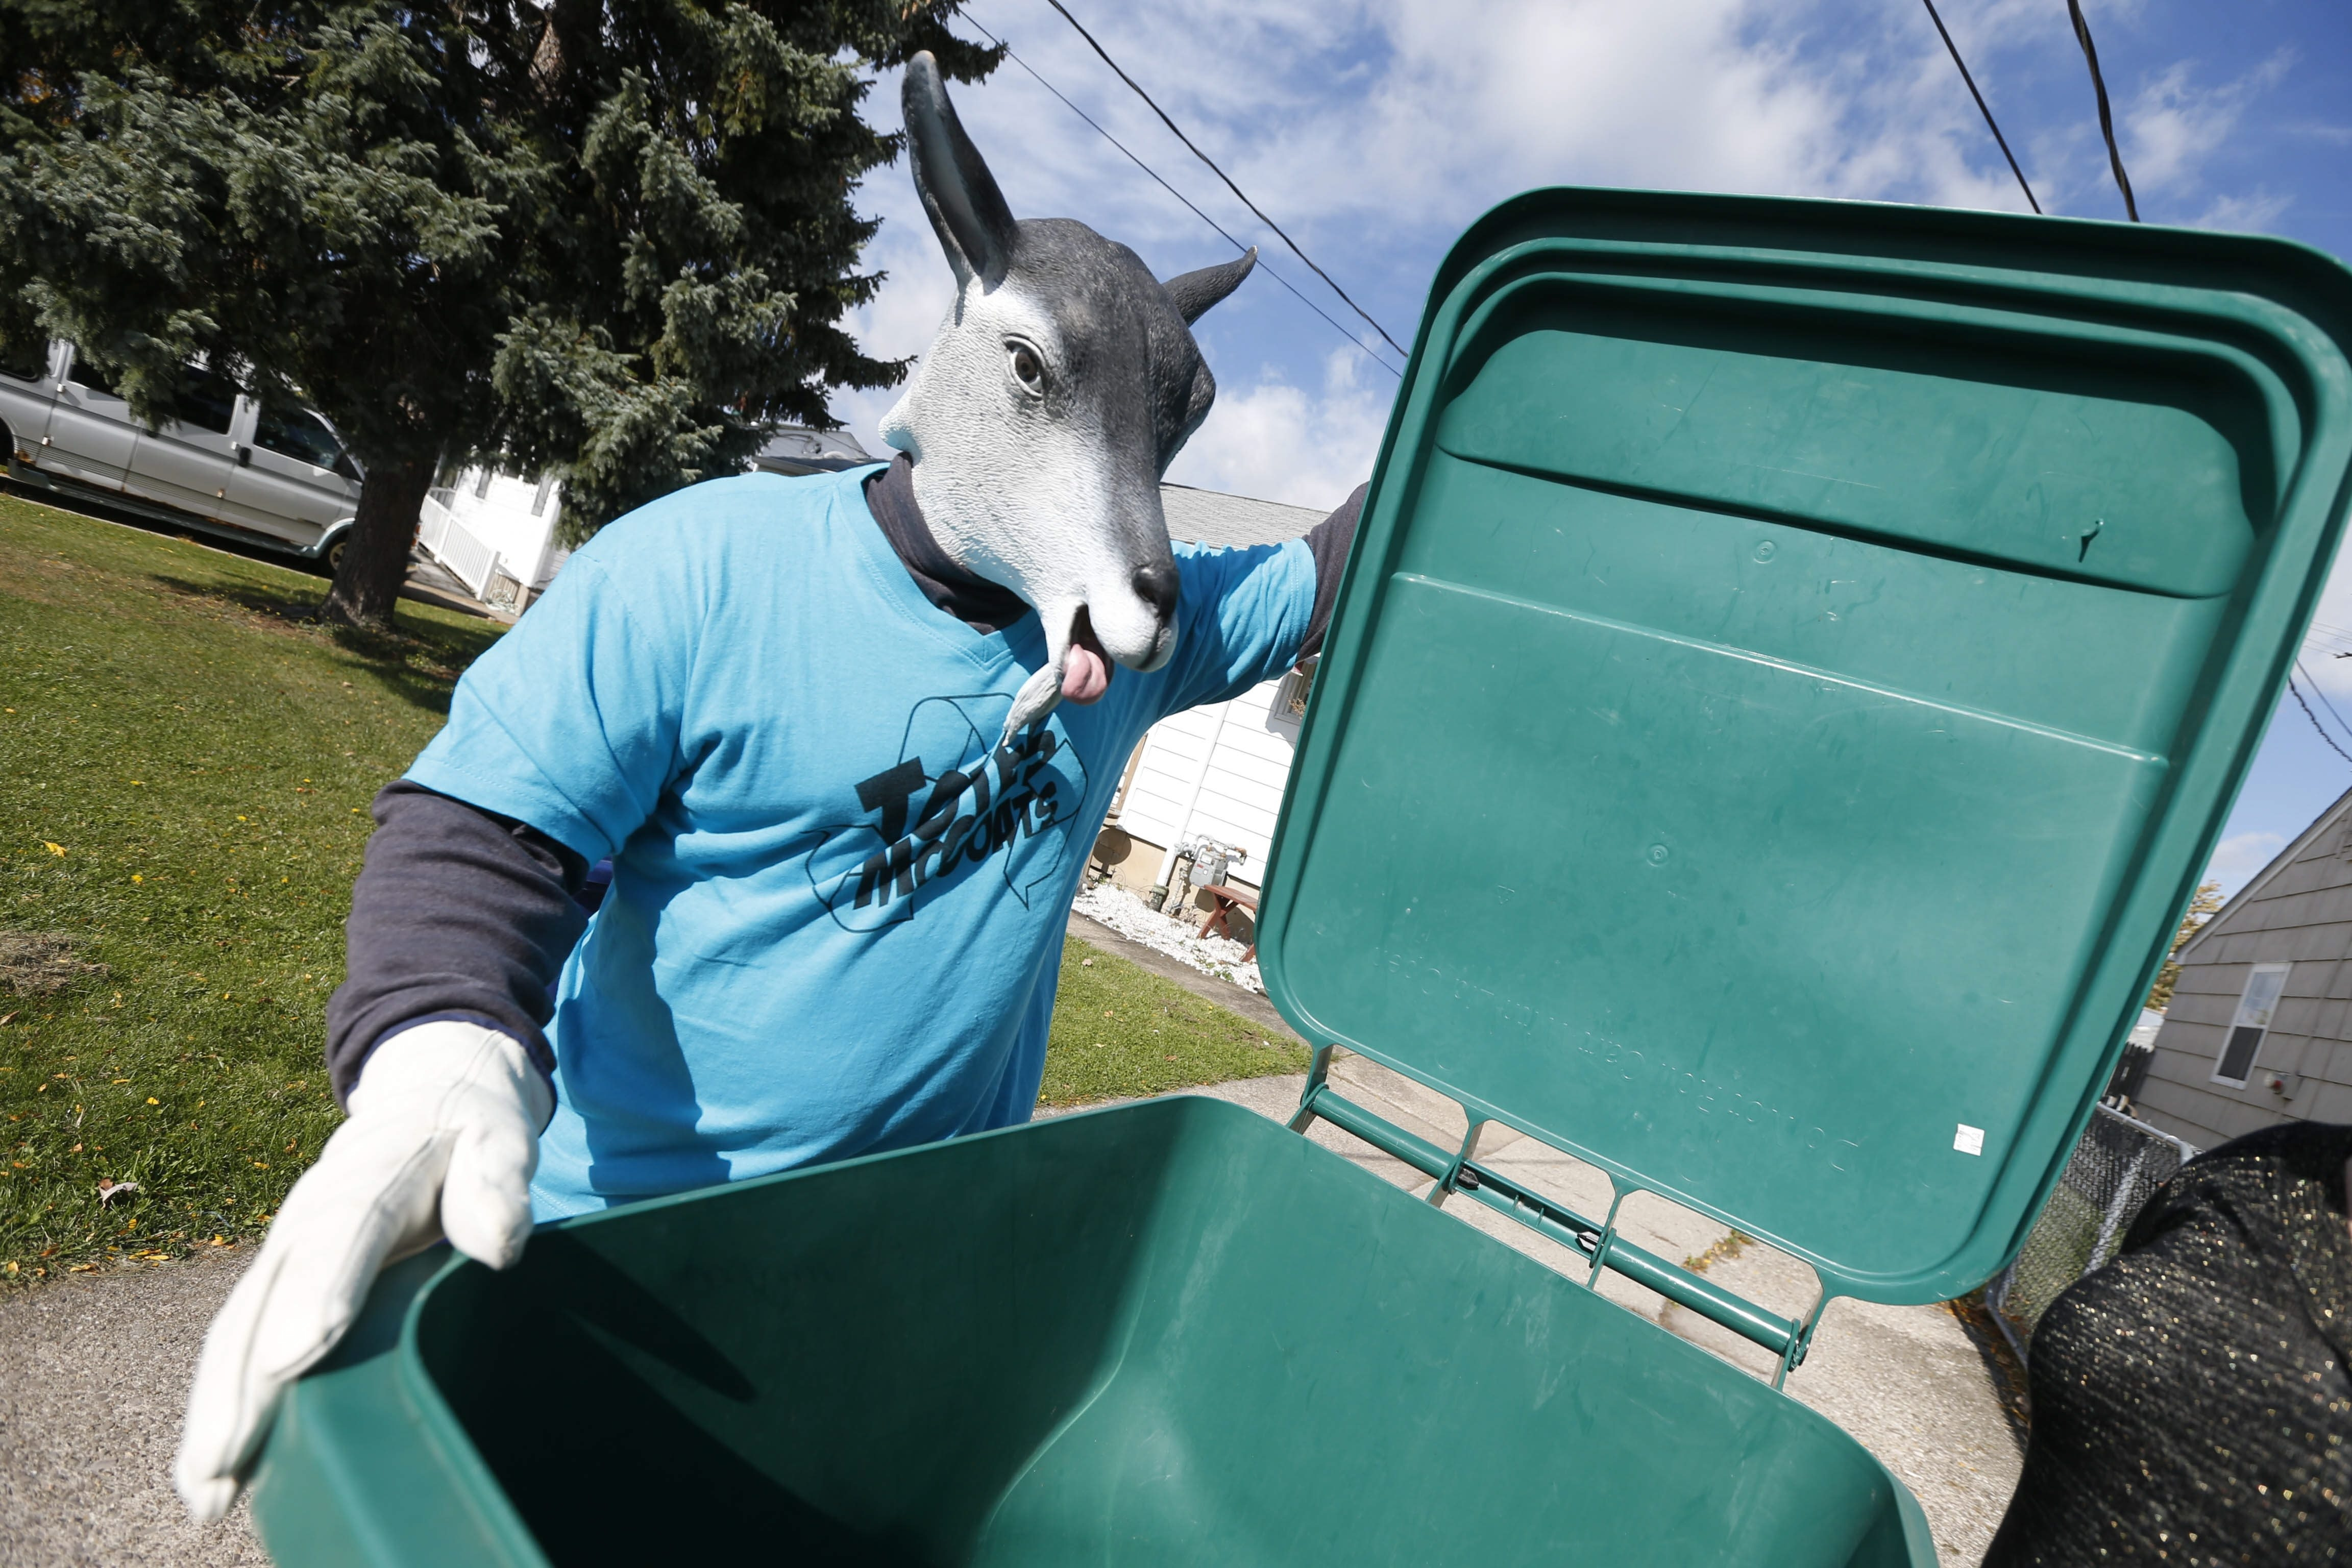 Totes McGoats made an appearance at a park on Jerauld St. in Niagara Falls, NY onThursday, Oct. 15, 2015.  (Robert Kirkham/Buffalo News)